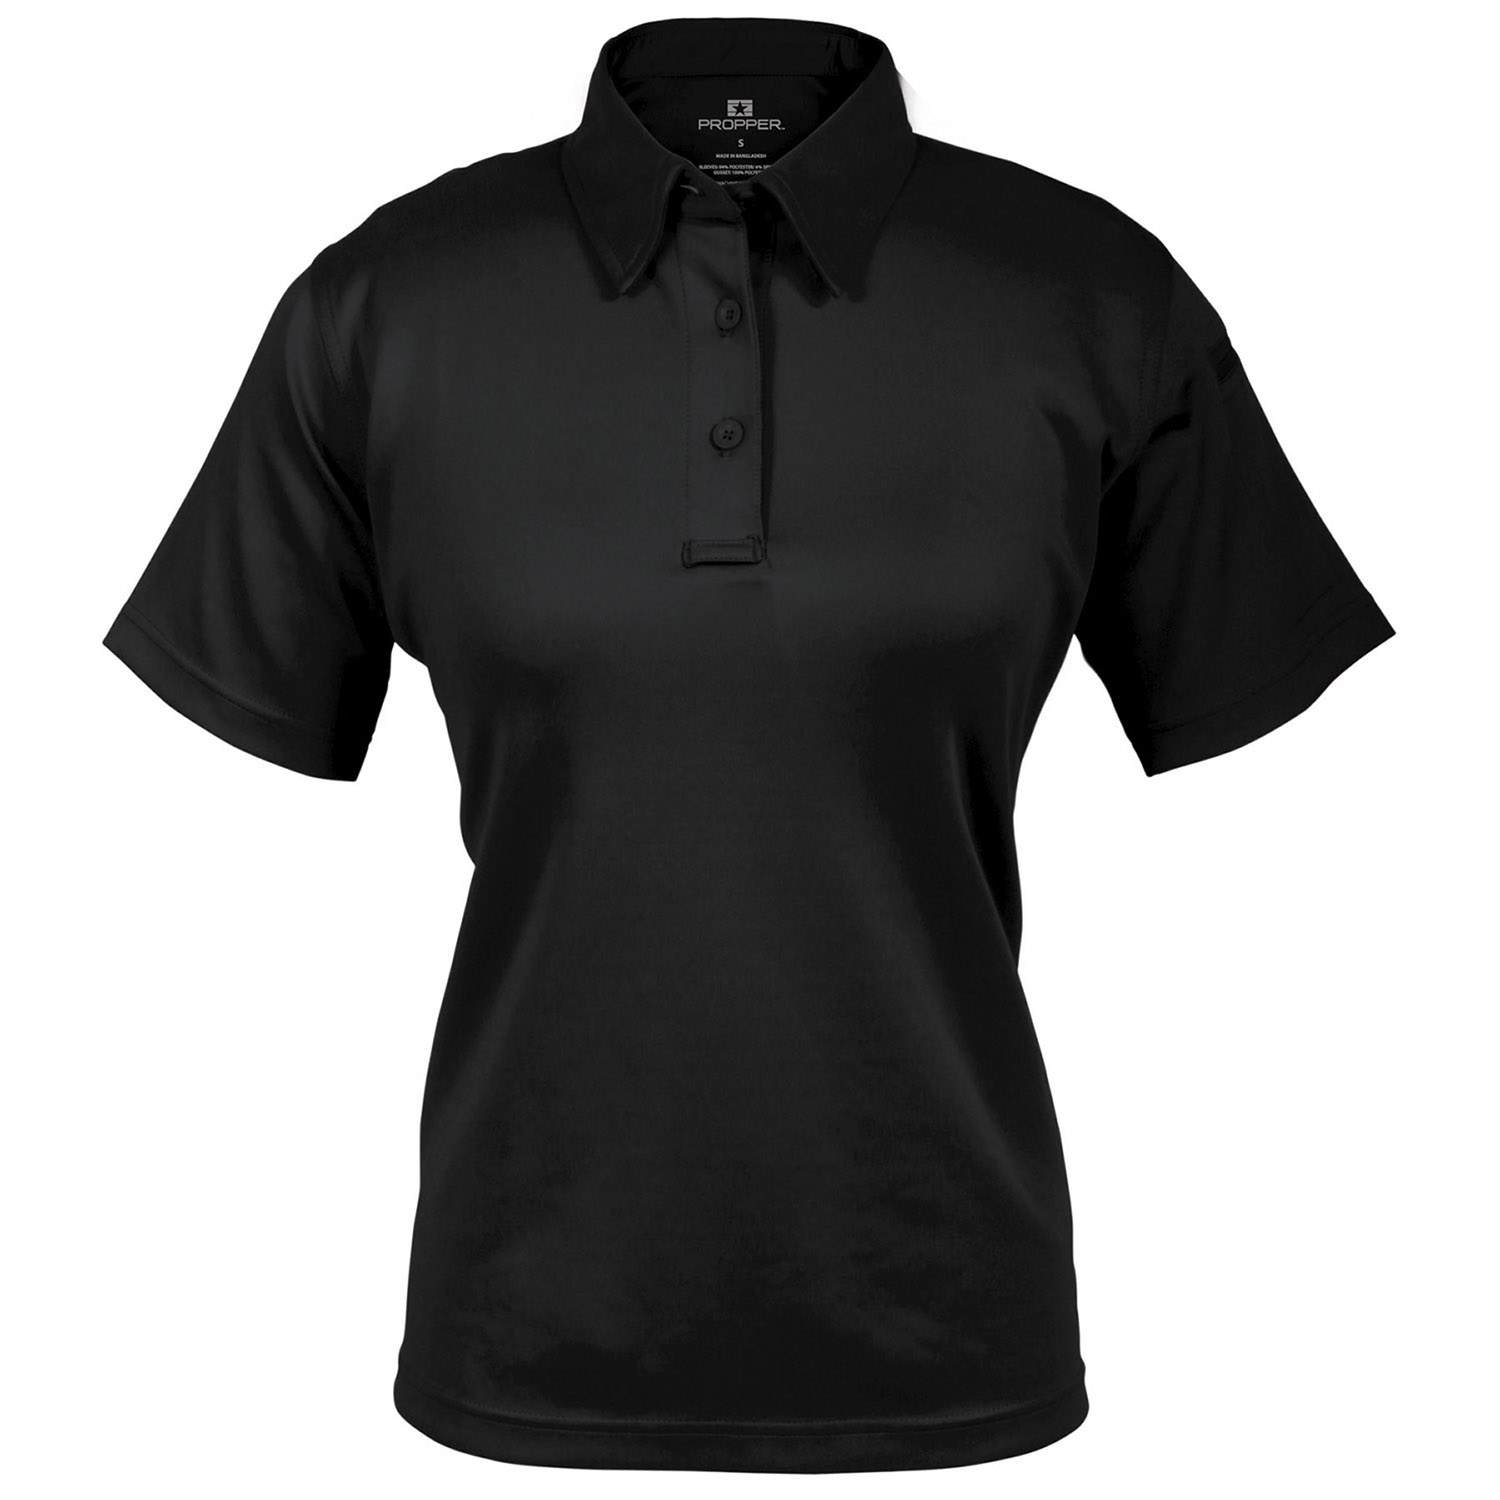 Propper Ice Short Sleeve Women's Polo Shirt